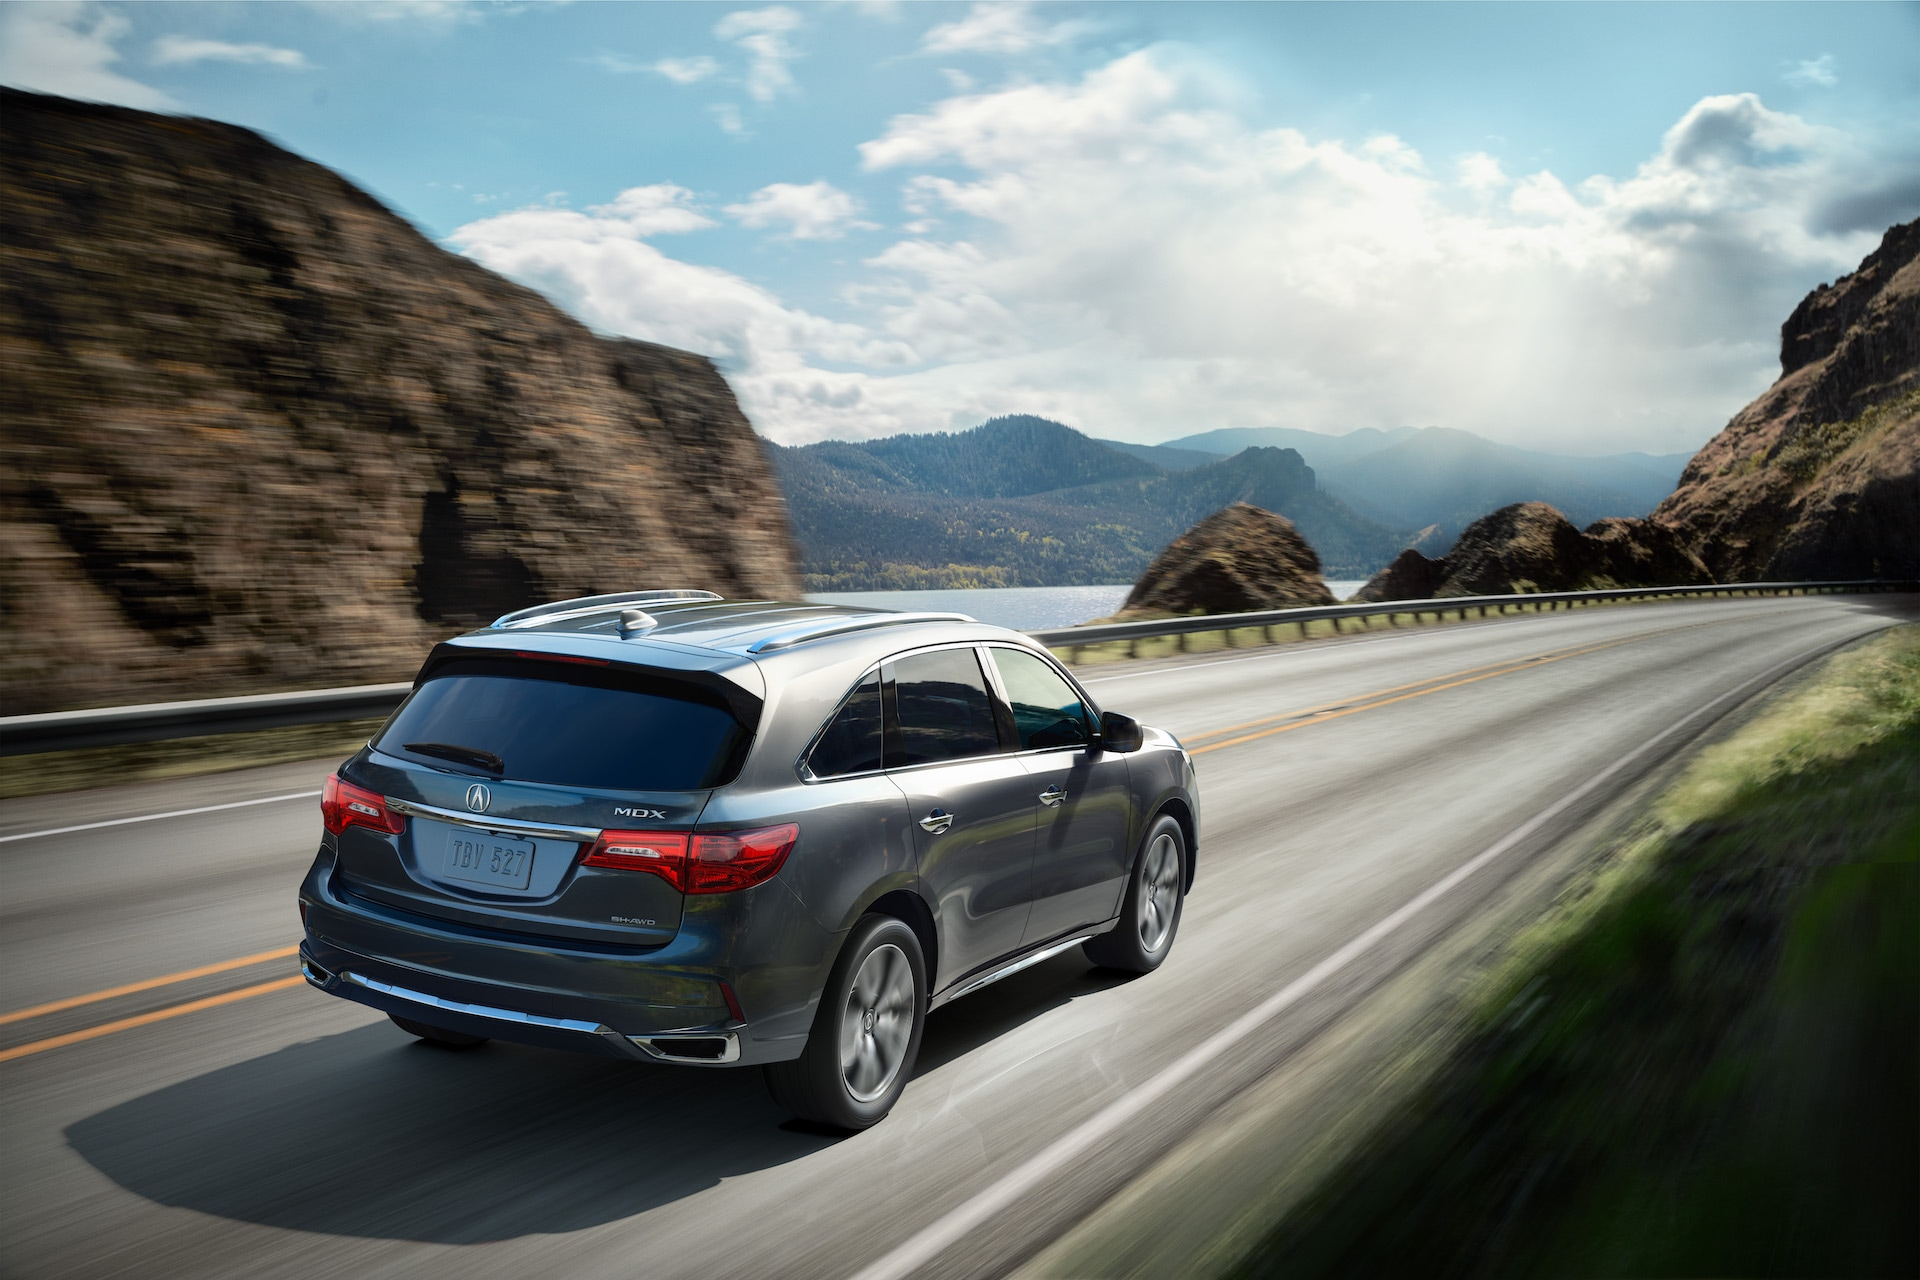 Compare the 2020 Lexus RX & the 2020 Acura MDX at Acura Hunt Valley | Gray 2020 Acura TMDX speeding away from camera on sea cliff road